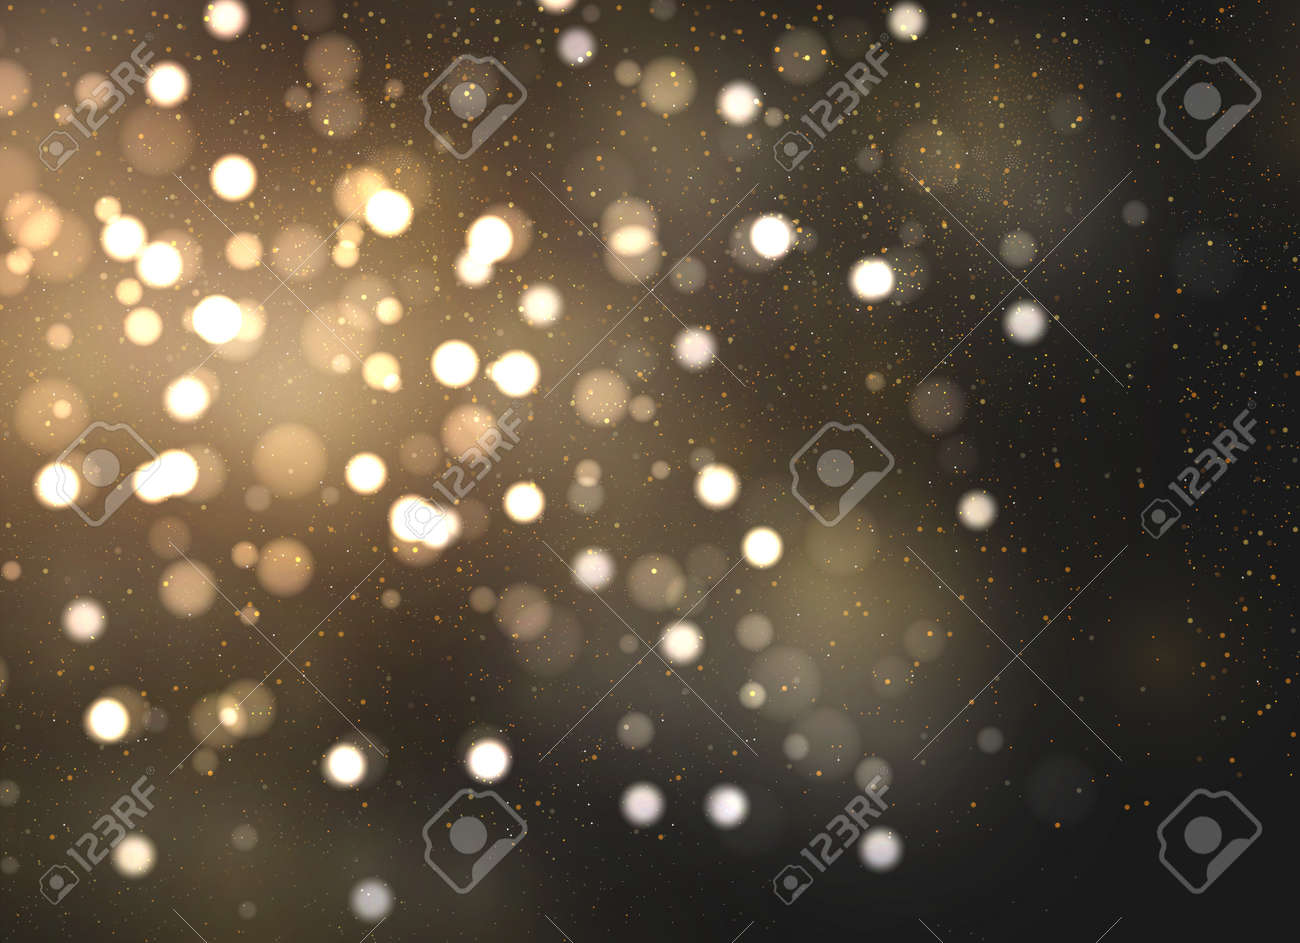 The dust sparks and golden stars shine with special light. Vector sparkles on a transparent background. Christmas light effect. Sparkling magical dust particles. - 151459858